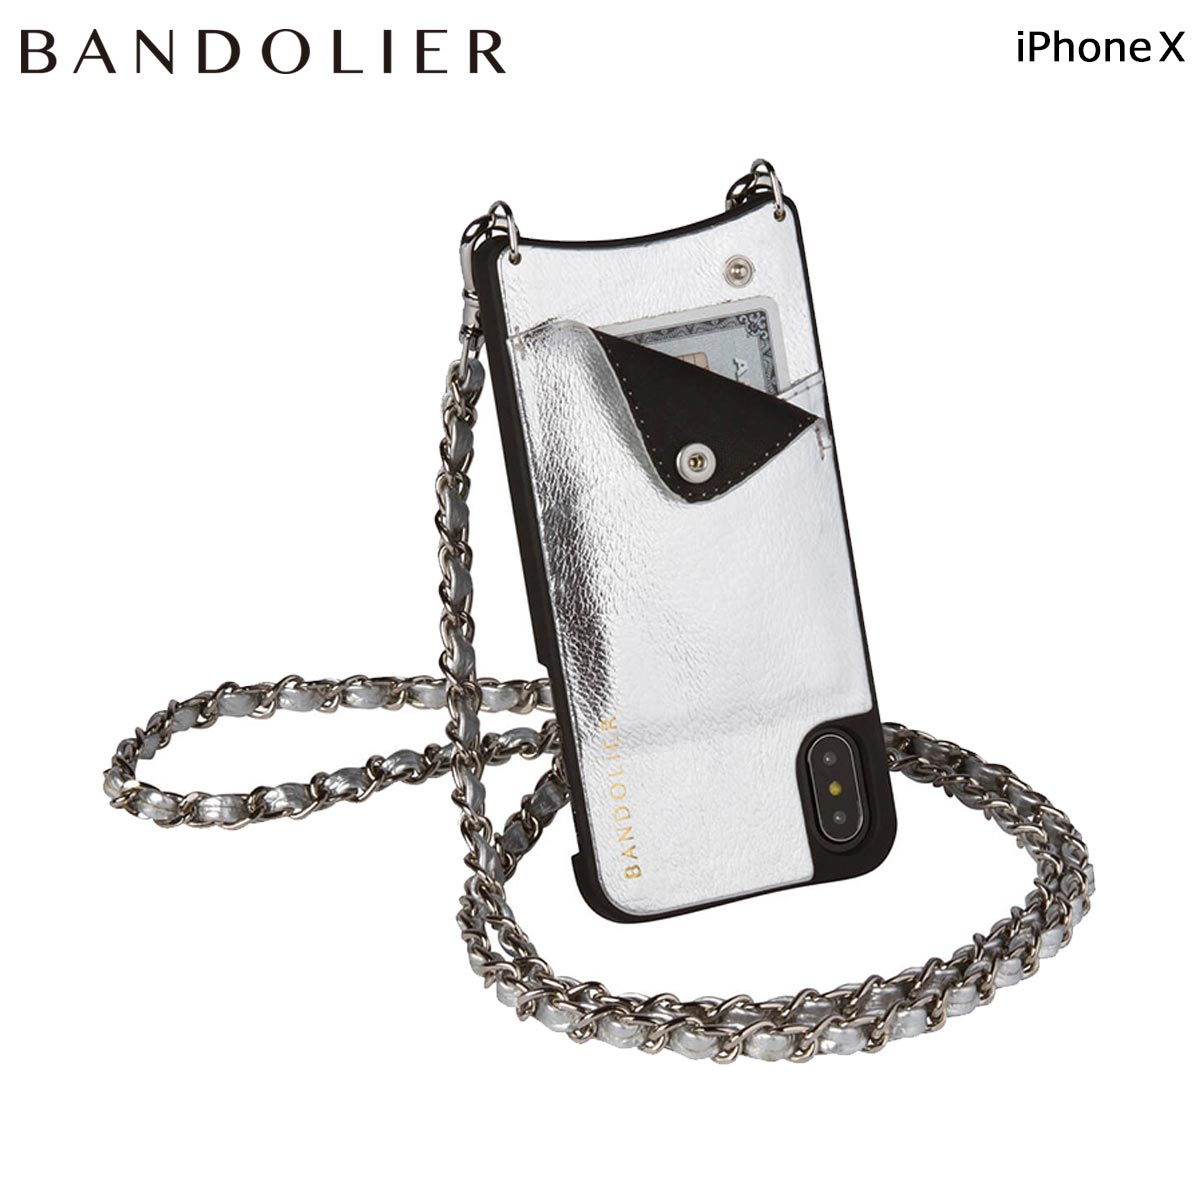 Messing Online Shop Band Re Yeah Bandolier Iphonex Case Smartphone Eyephone Lucy Metallic Silver Leather Men Gap Dis 6 1 Shinnyu Load